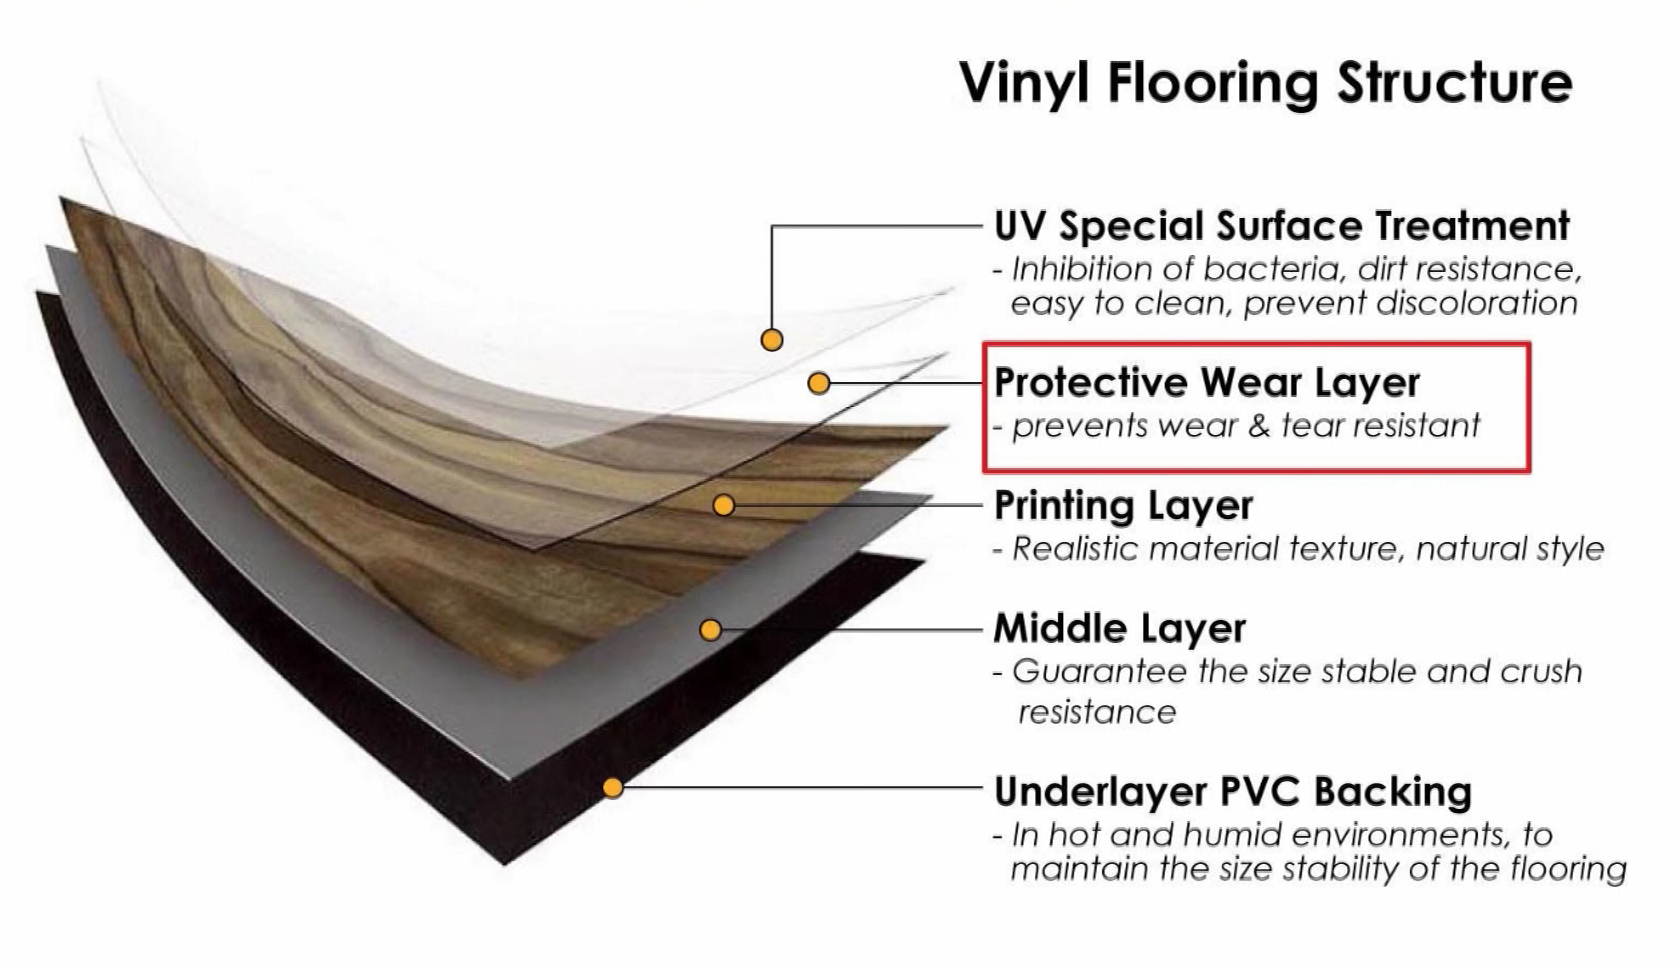 Vinyl Flooring: What You Need to Know